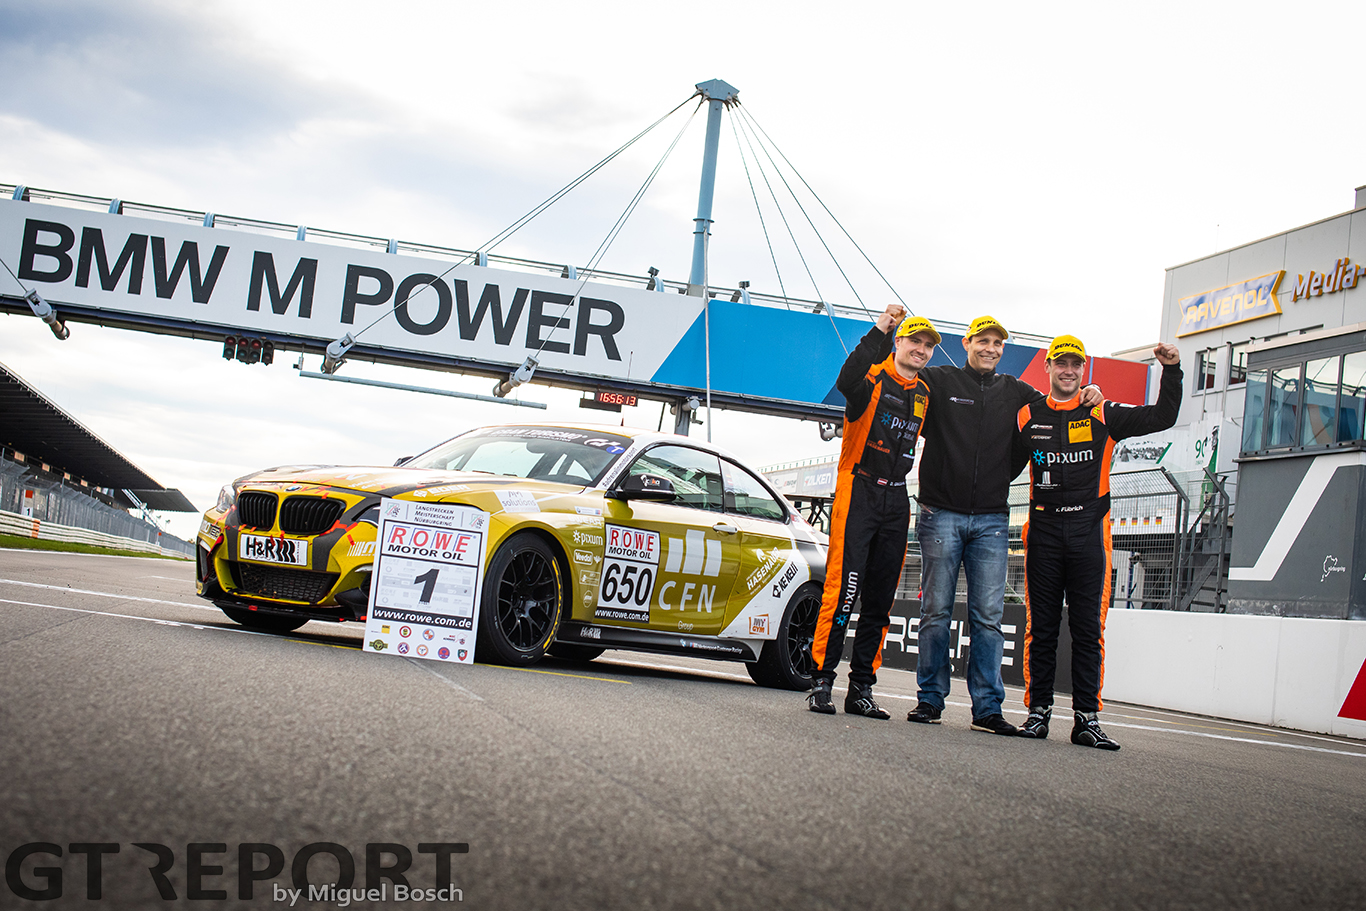 """Matthias Unger: """"Keeping the number 1 is the only goal, every year"""""""